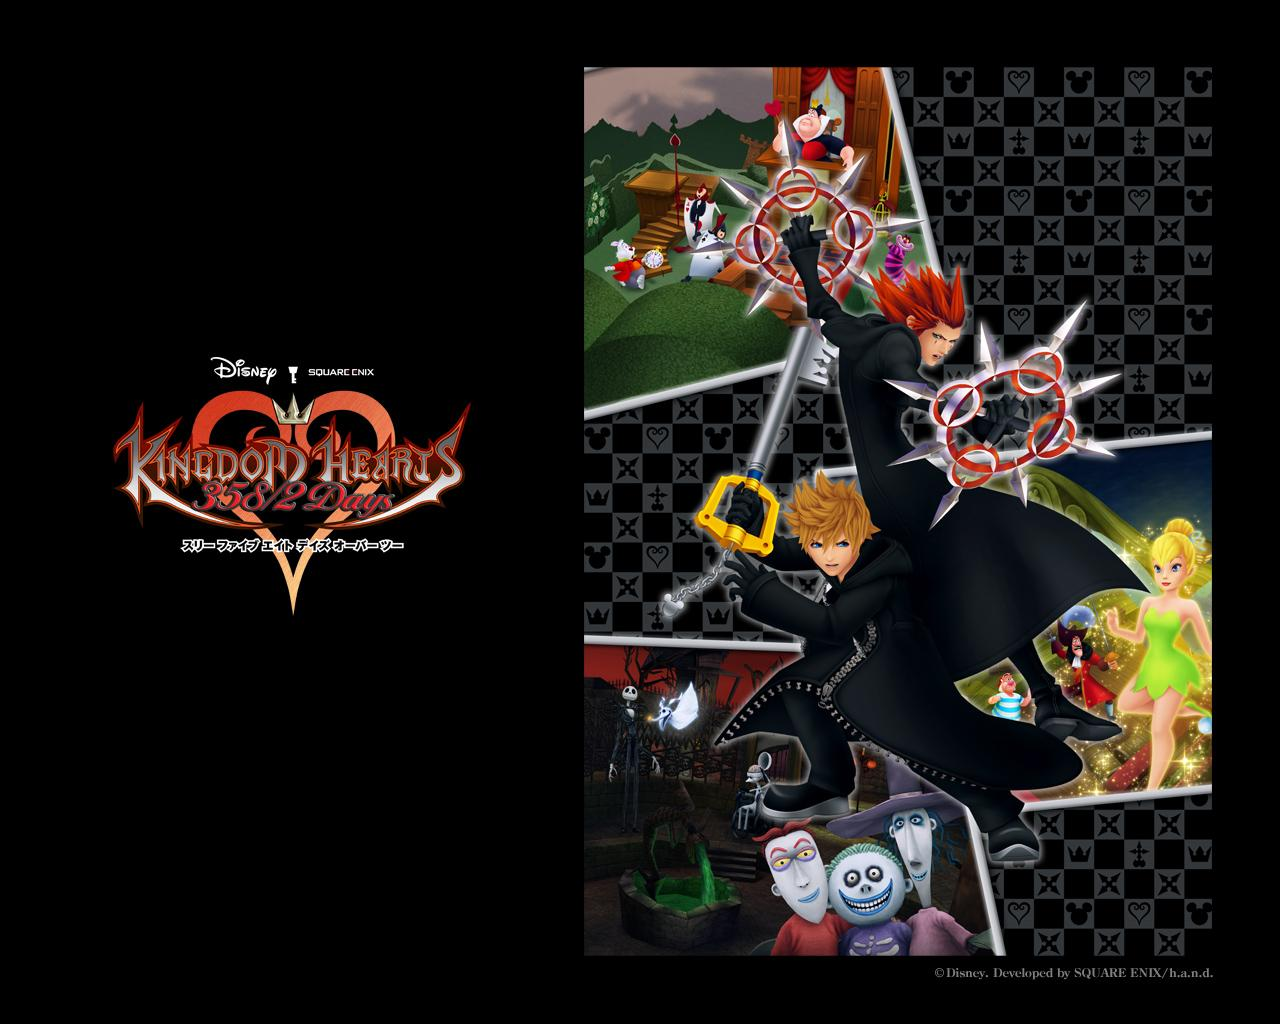 Kingdom Hearts 358 2 Days Wallpaper 3 Wallpapers Kh13 For